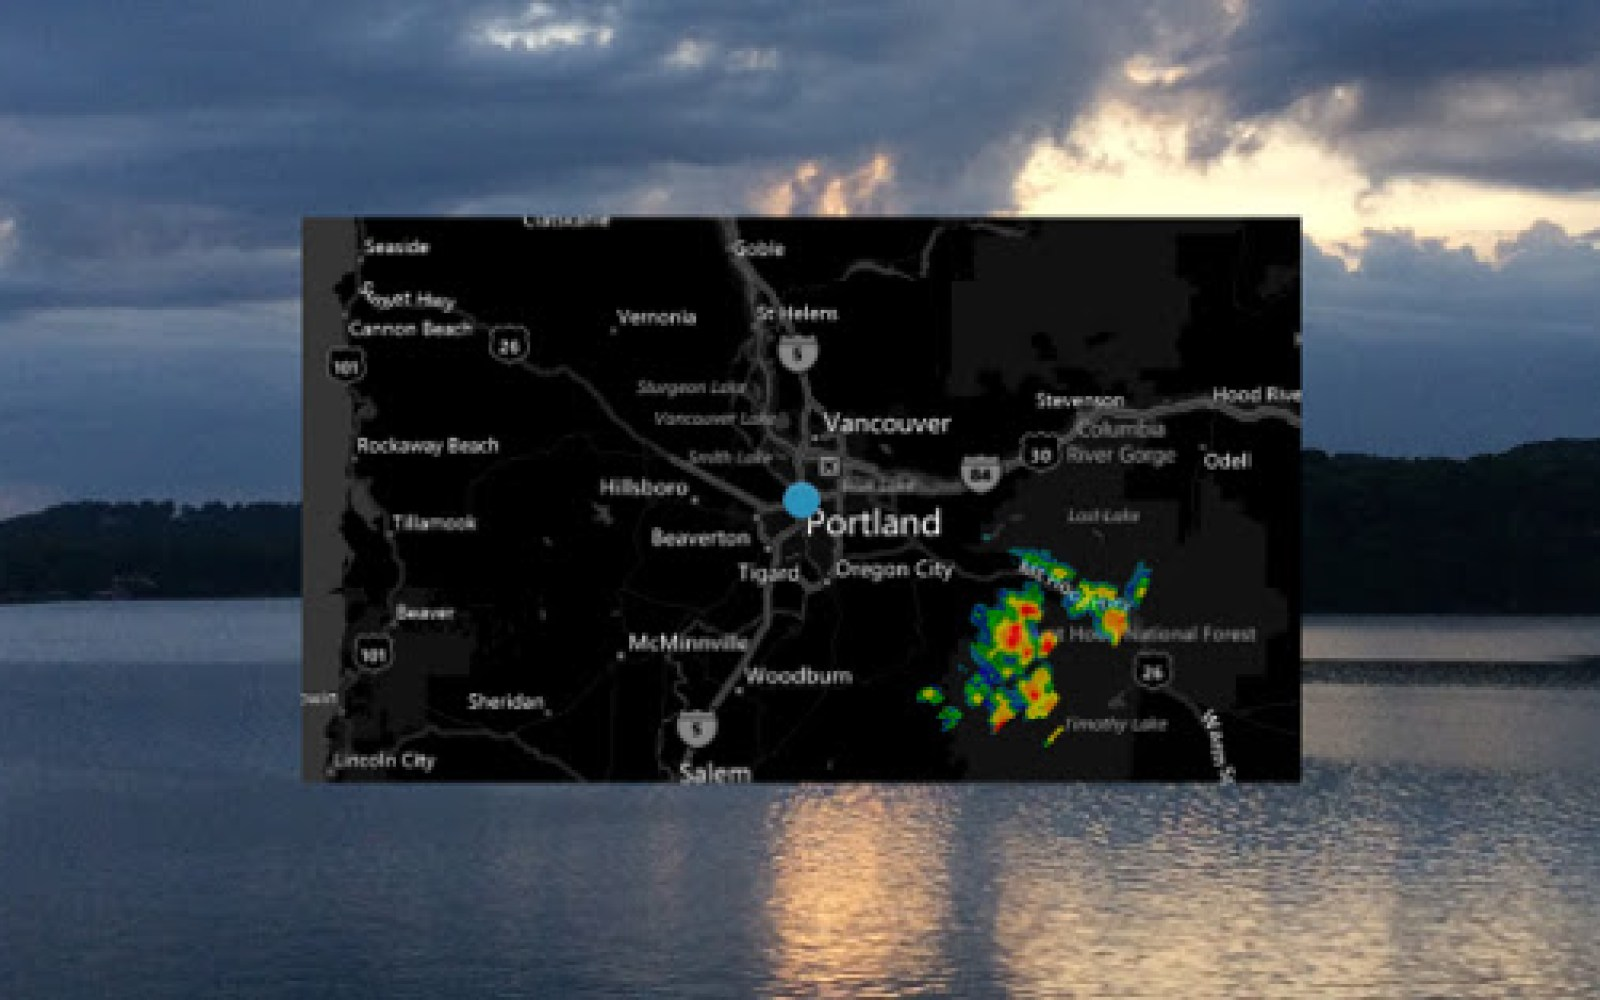 New MyRadar official Glassware lets you view live radar on Google Glass